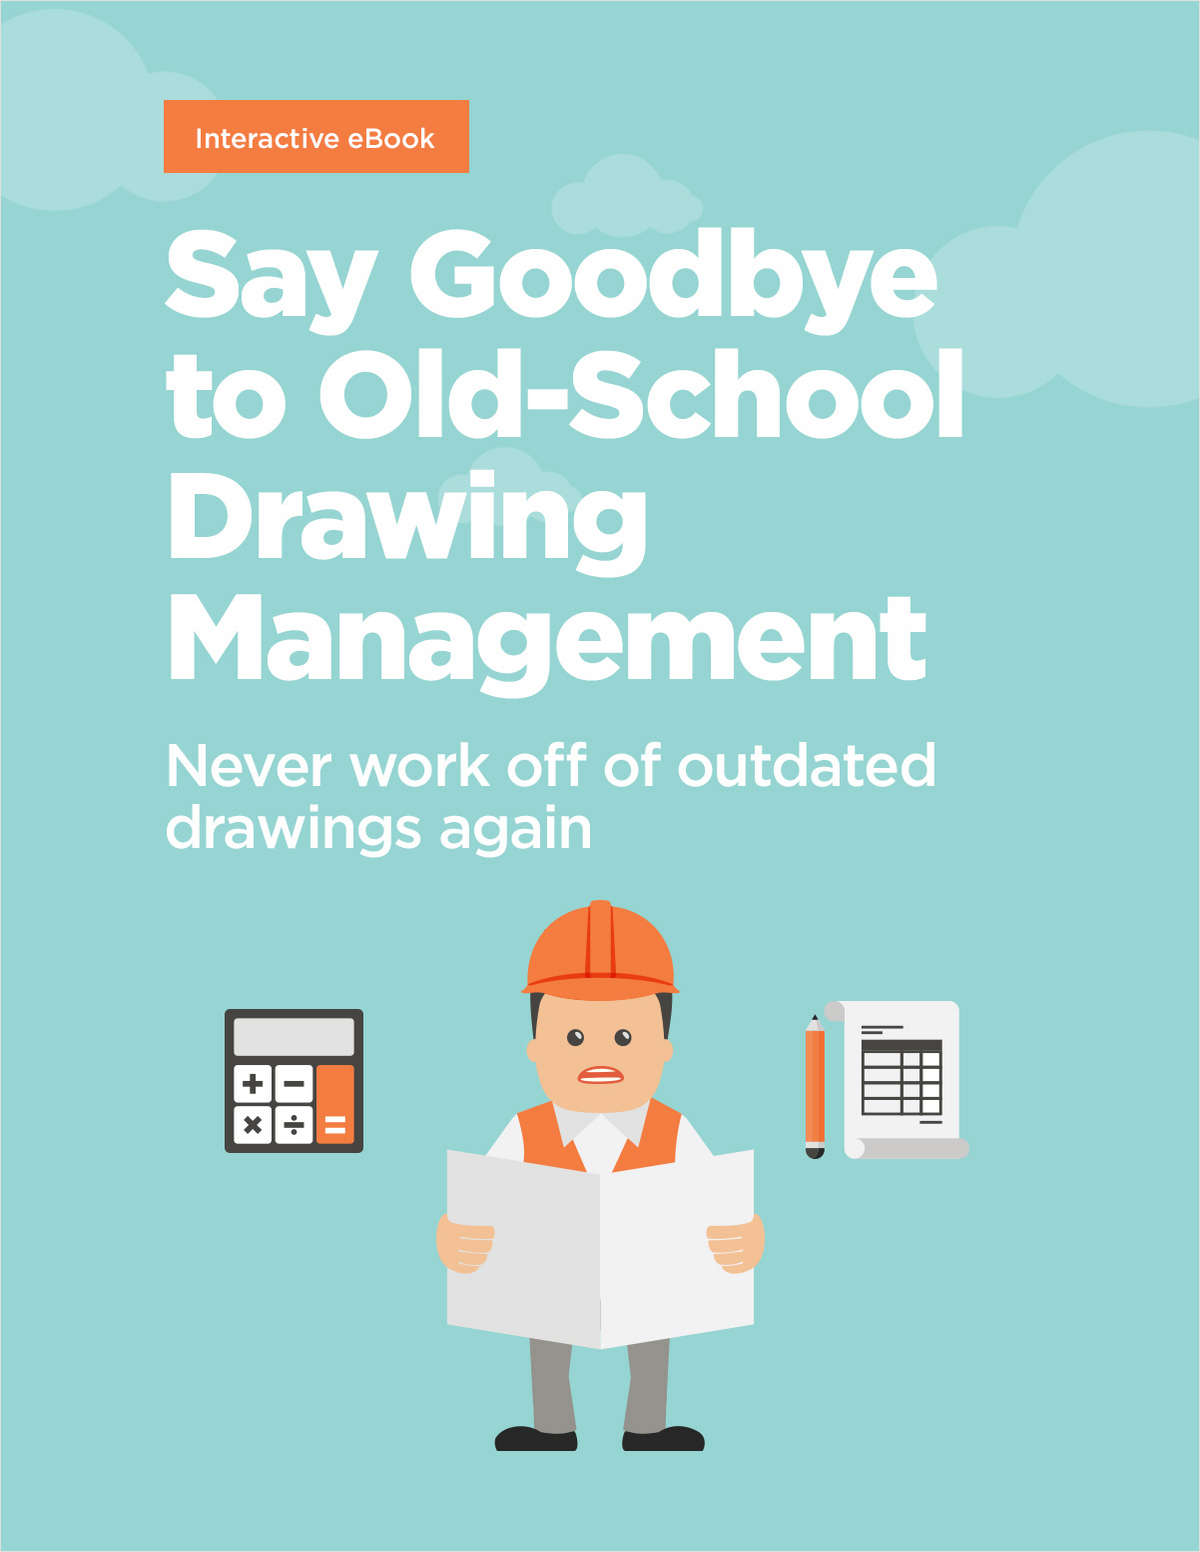 Say Good Bye to Old-School Drawing Management